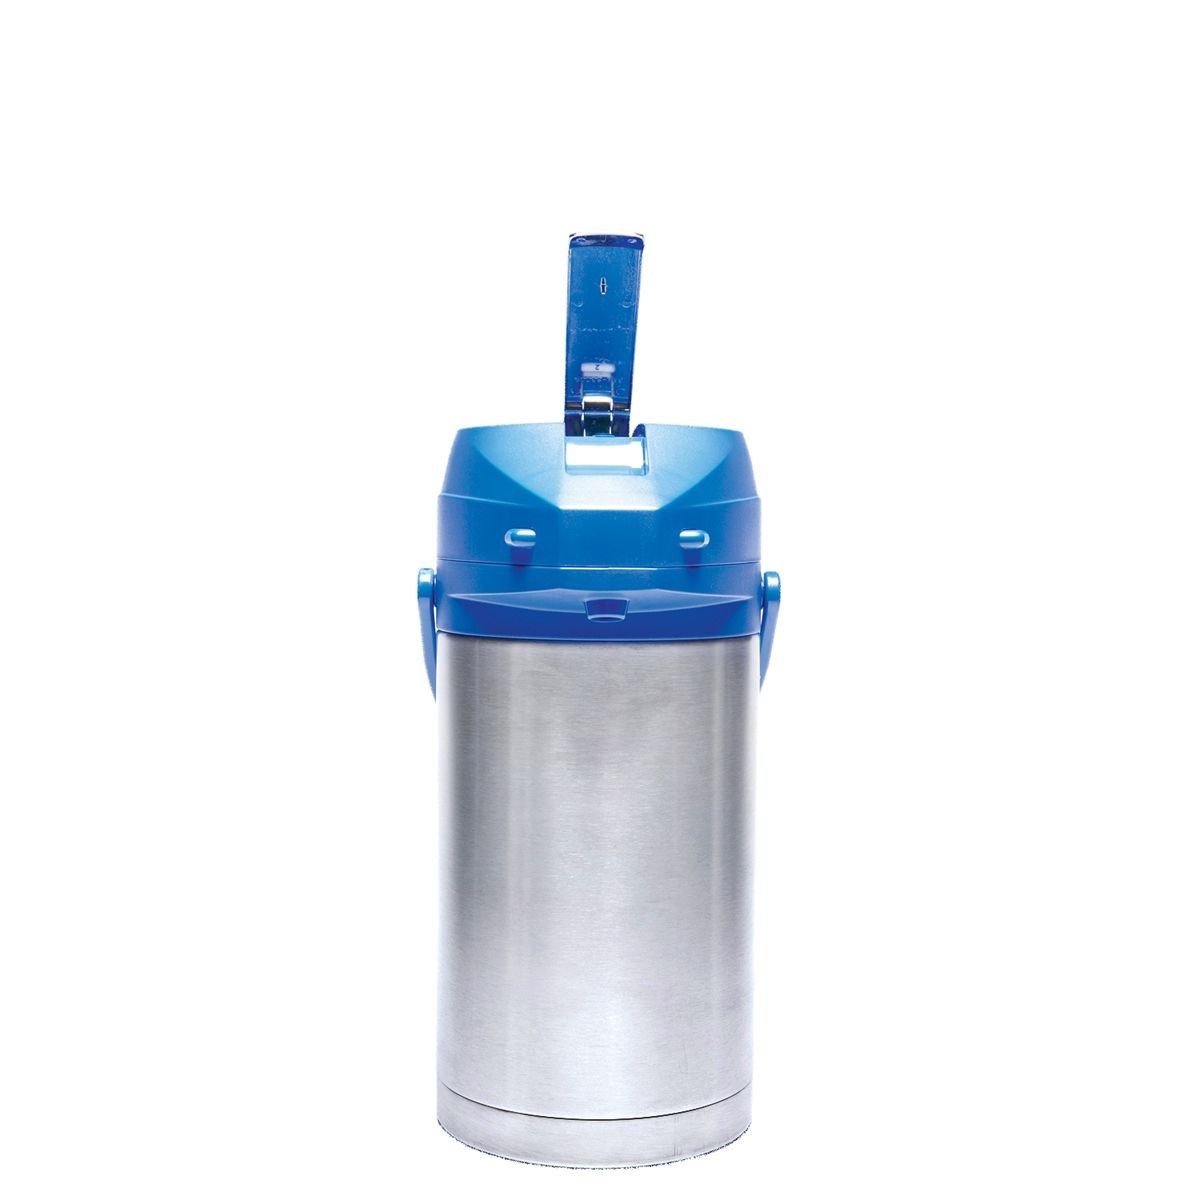 Service Ideas CTAL30BLU Blue Top Stainless Steel Lined Color Me SVAC Airpot, 3.0 Liter